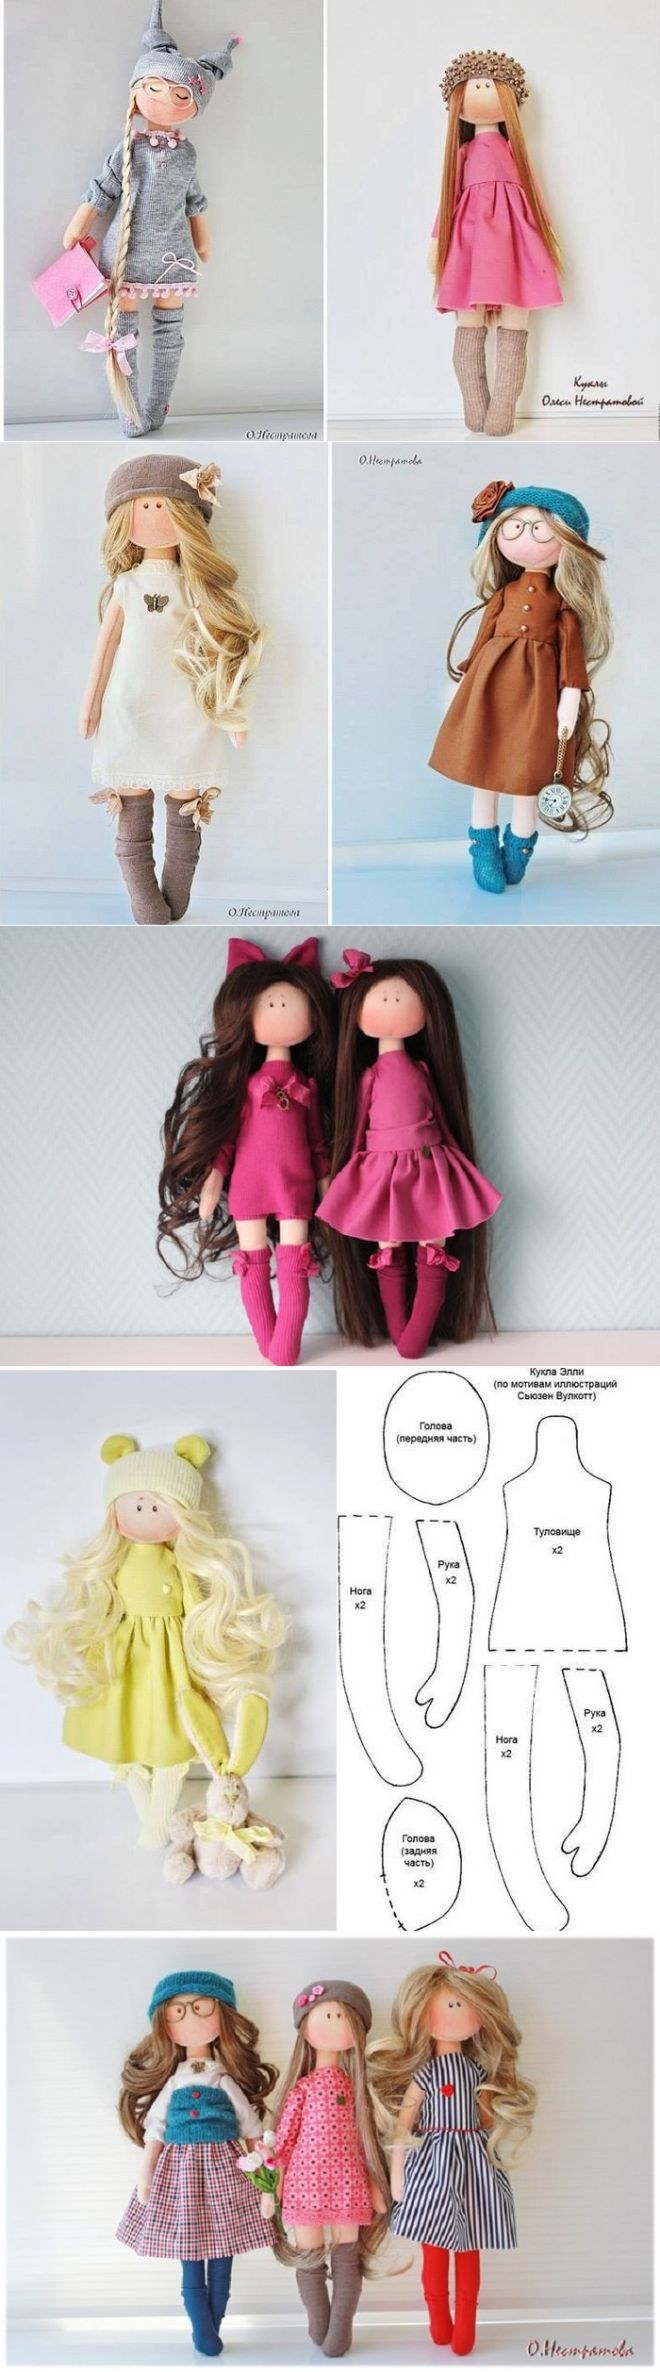 best 25 diy russian dolls ideas on pinterest diy origami doll